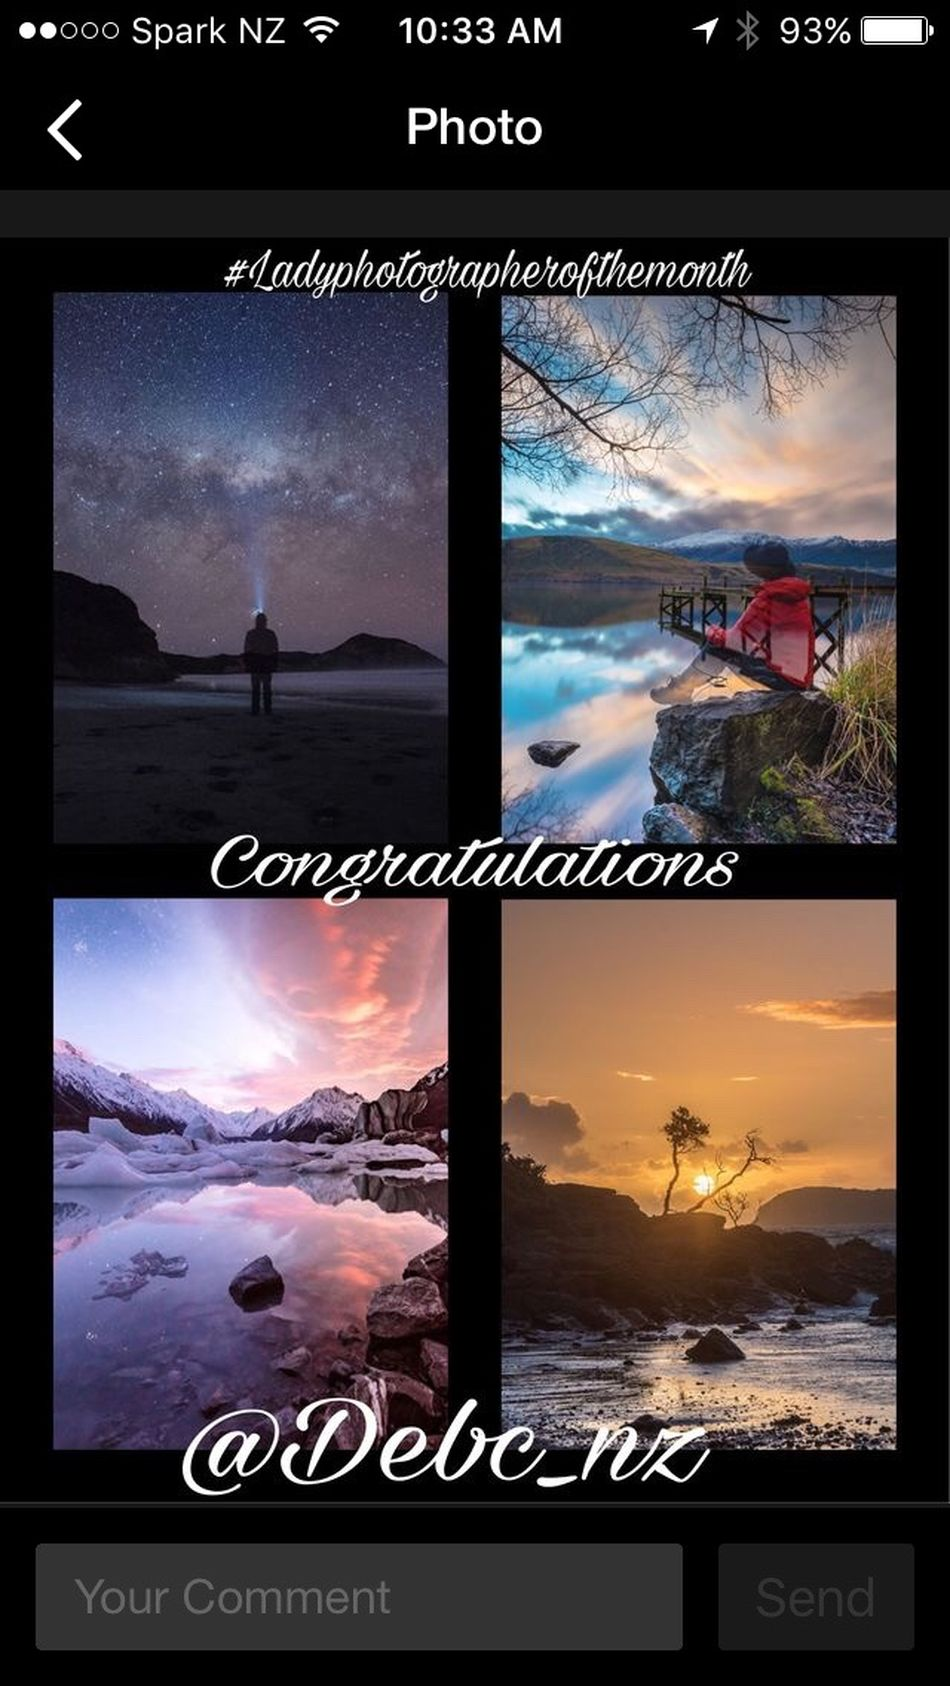 Was so excited to get this! Ladies Plase follow Gordy @Durhamite he puts so much time into this and tag your photos to Ladyphotographerofthemonth